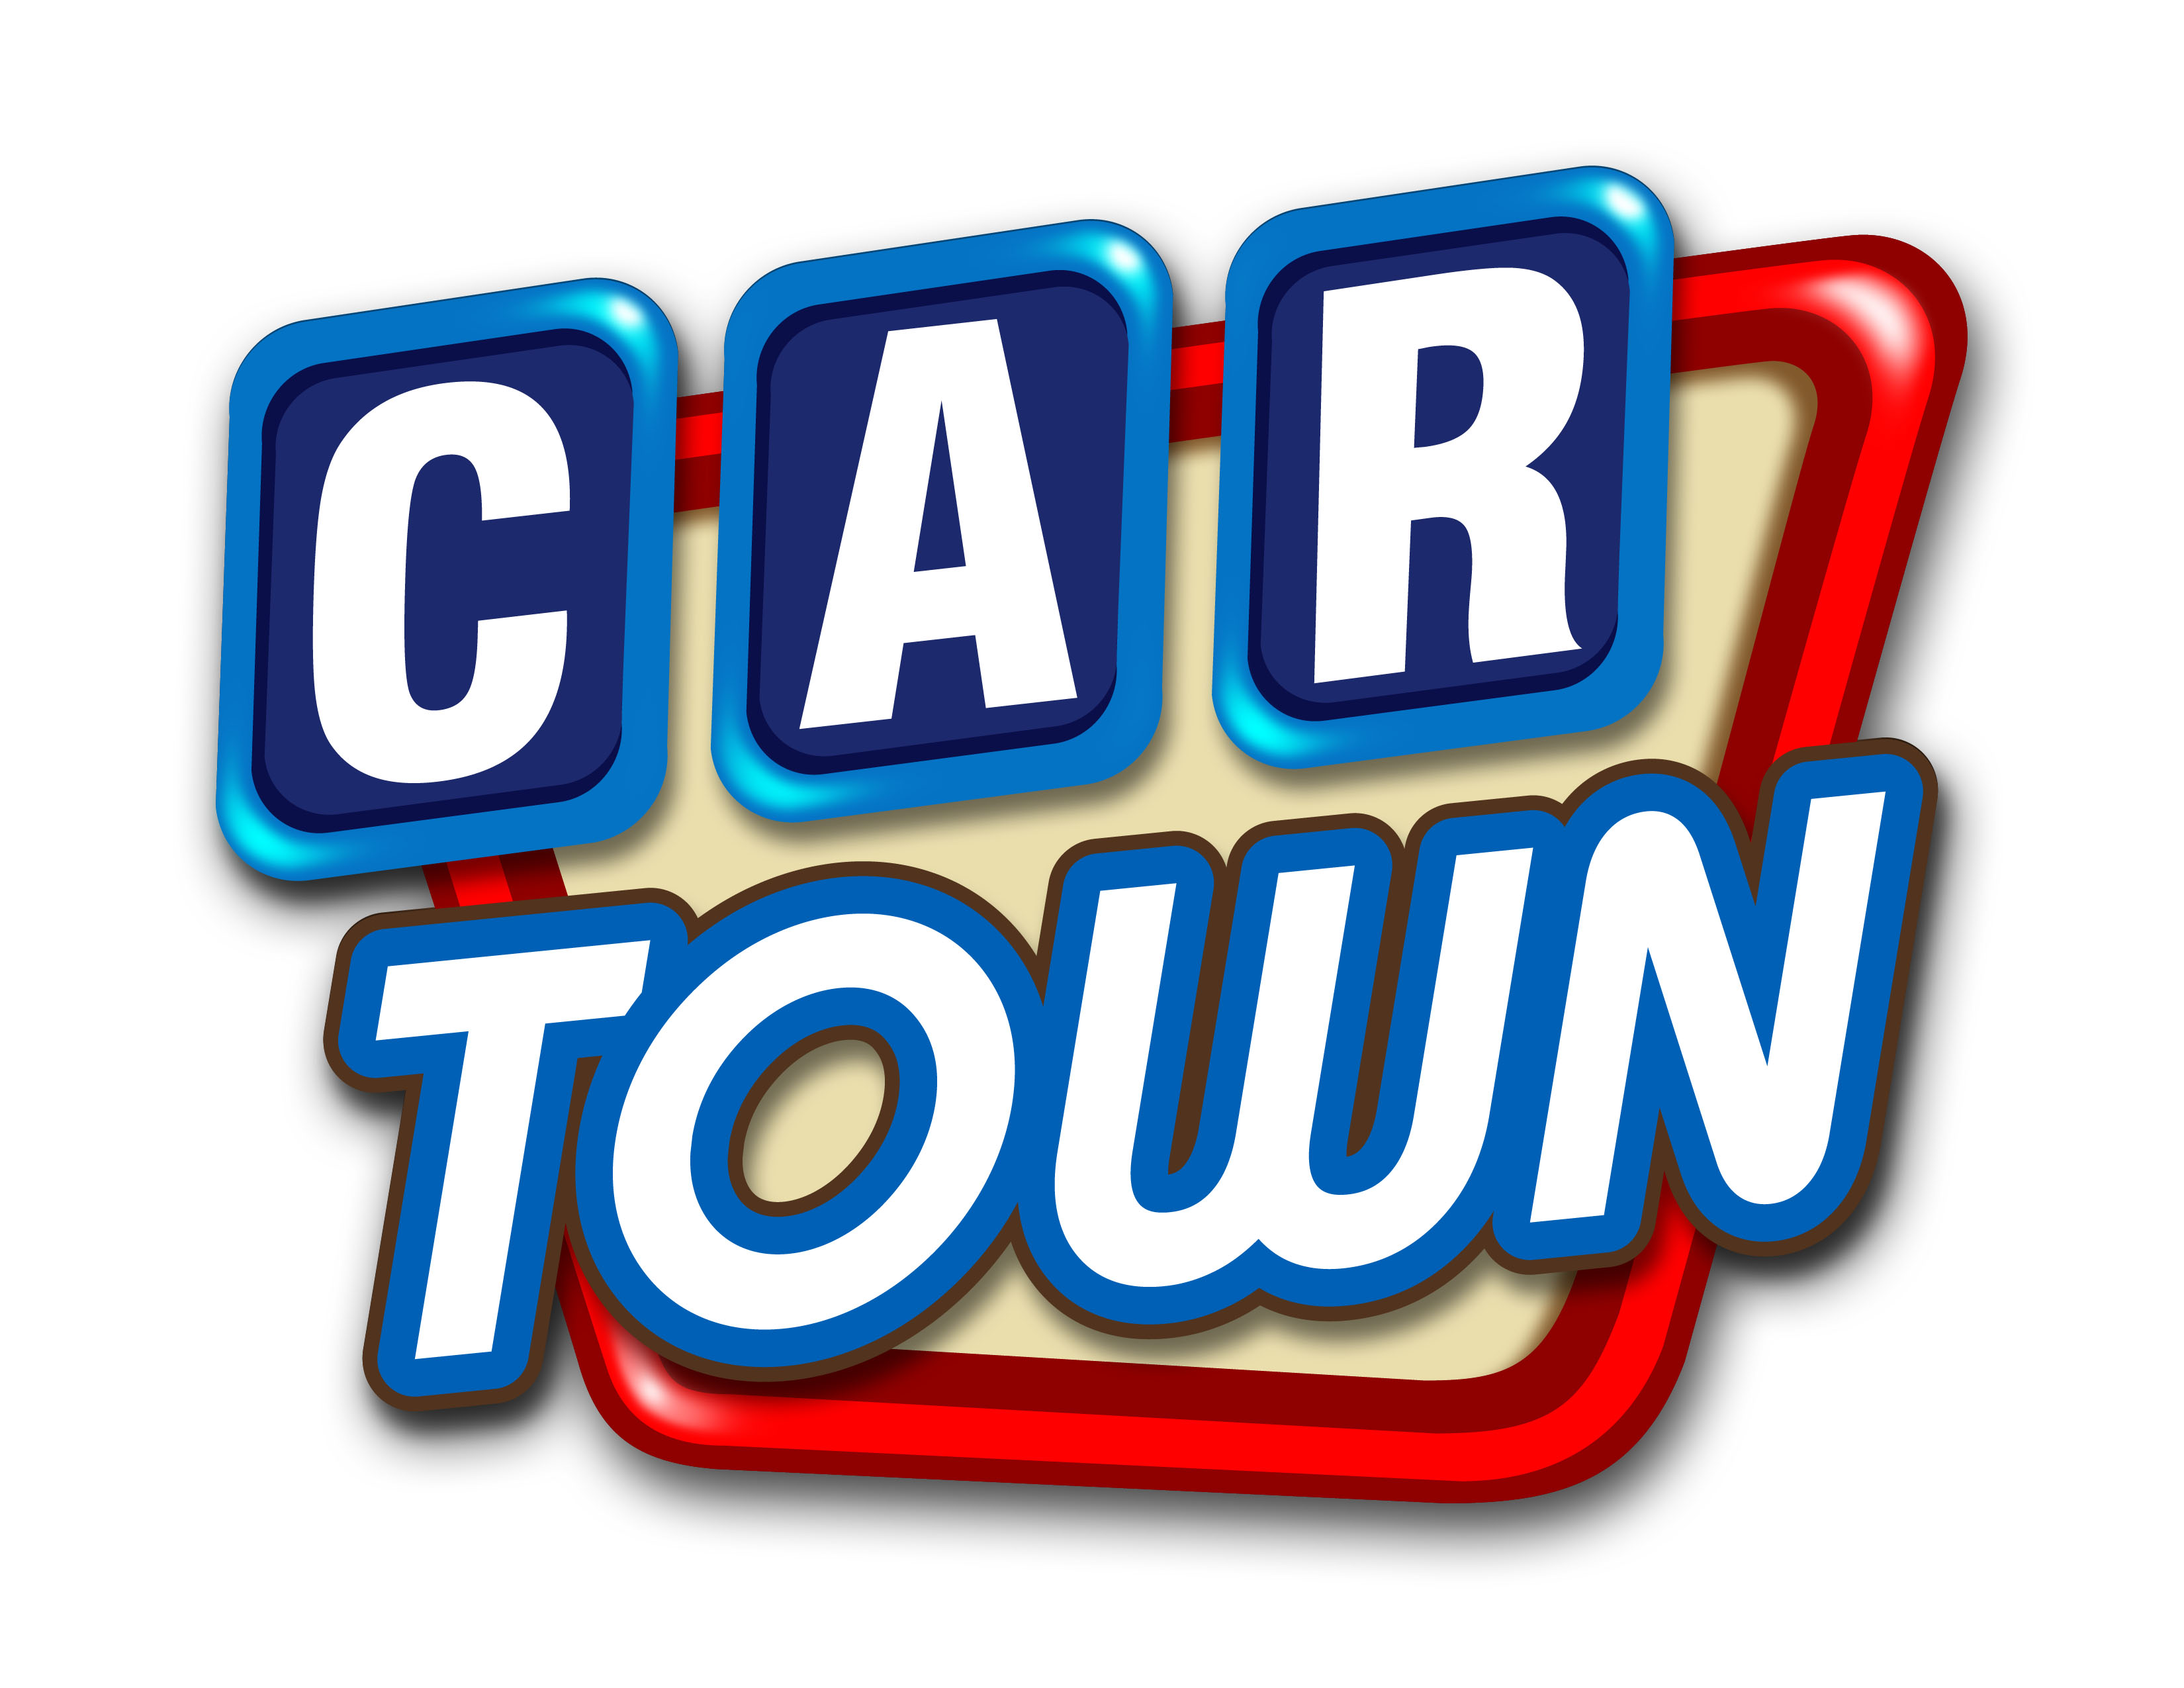 1000+ images about Car Town on Pinterest.